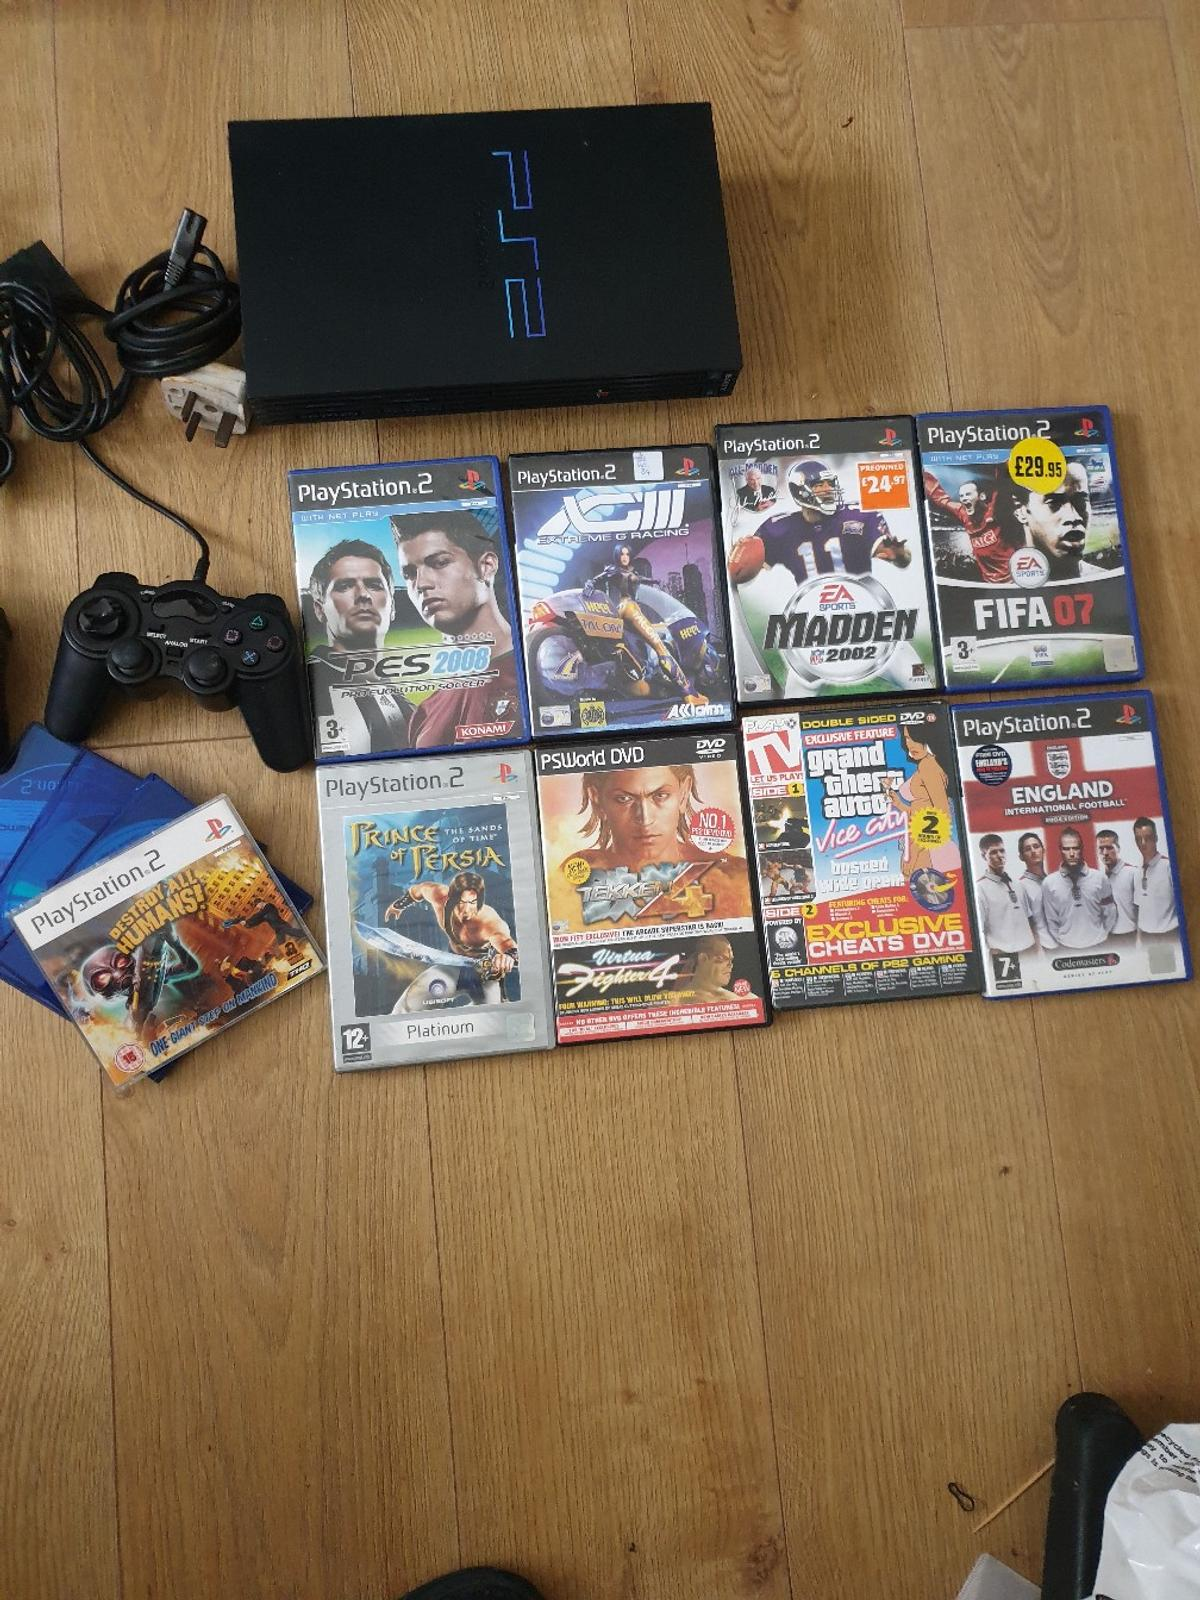 ps2 console with all wires in a excellent condition. Two controllers, and many games.